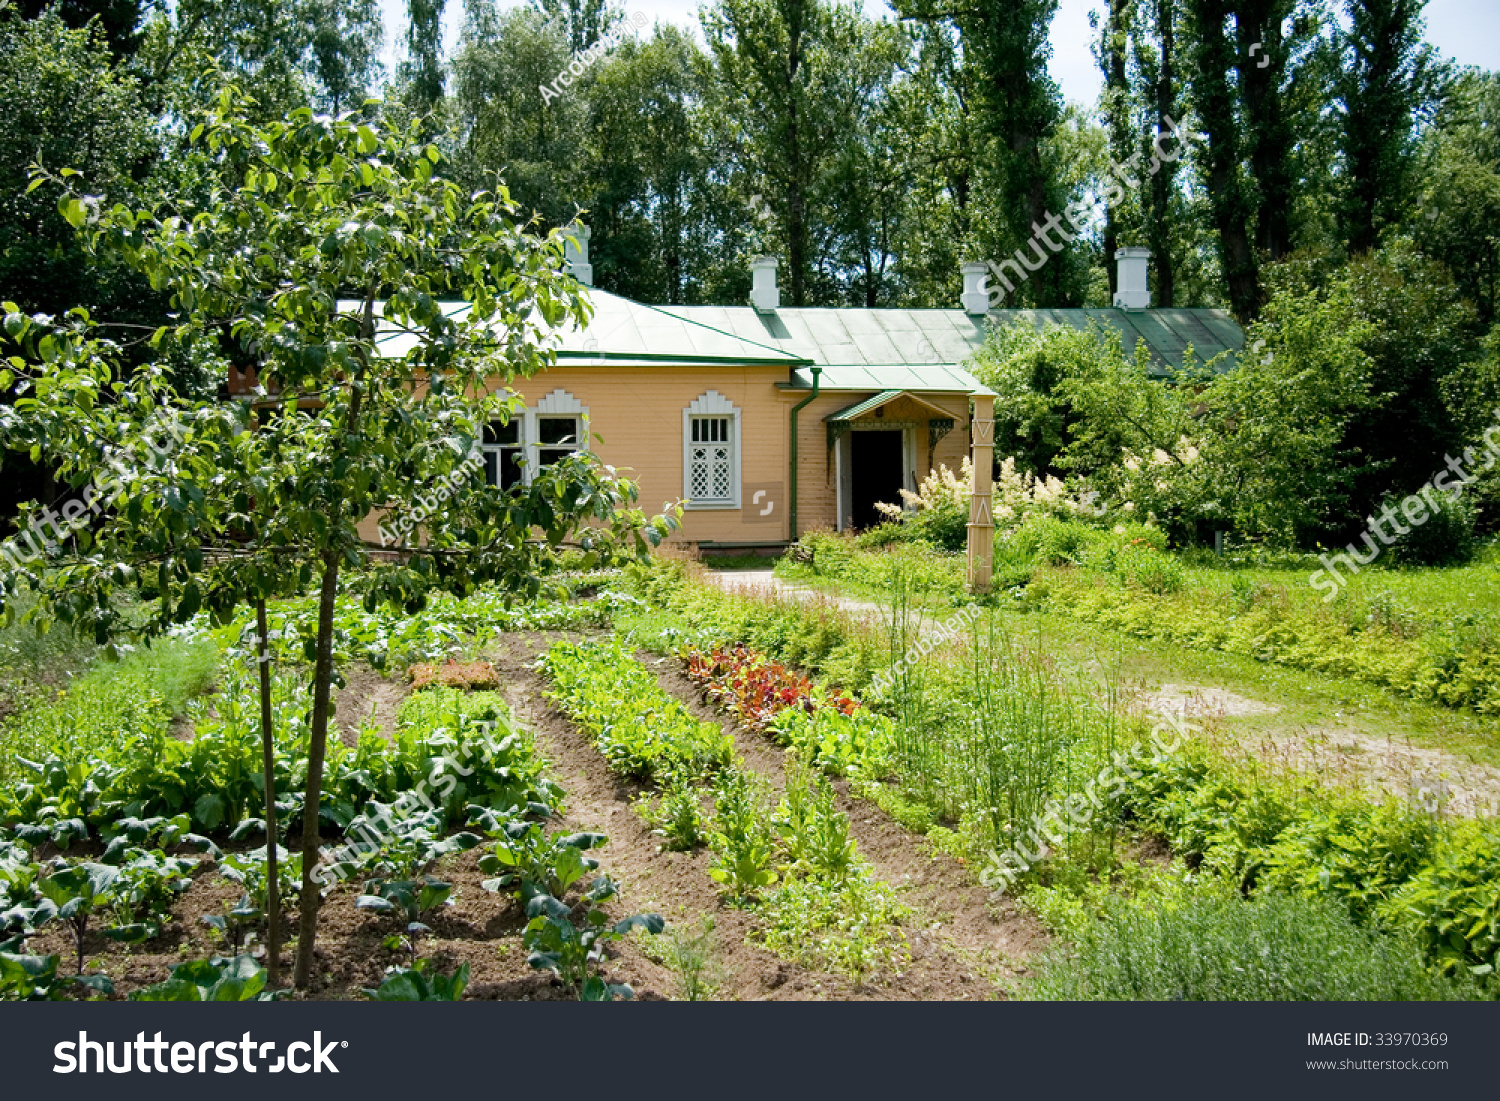 Country vegetable gardens - Beautiful Country House And Vegetable Garden